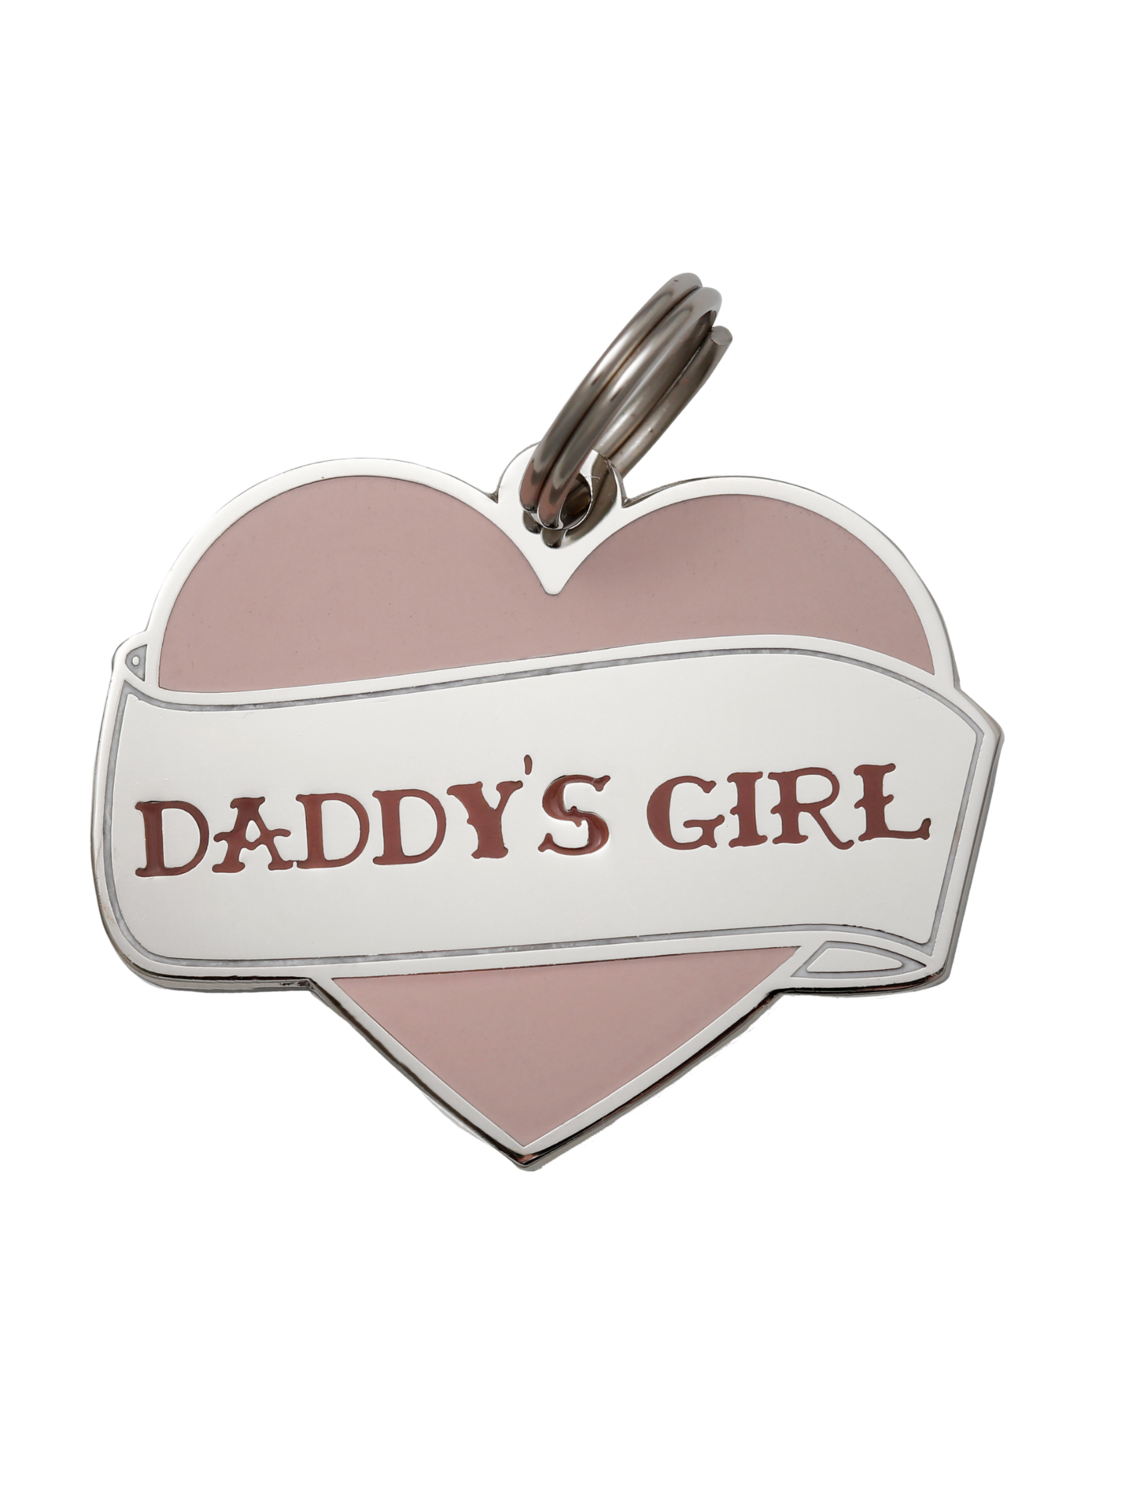 Pet ID Tag - Daddy's Girl